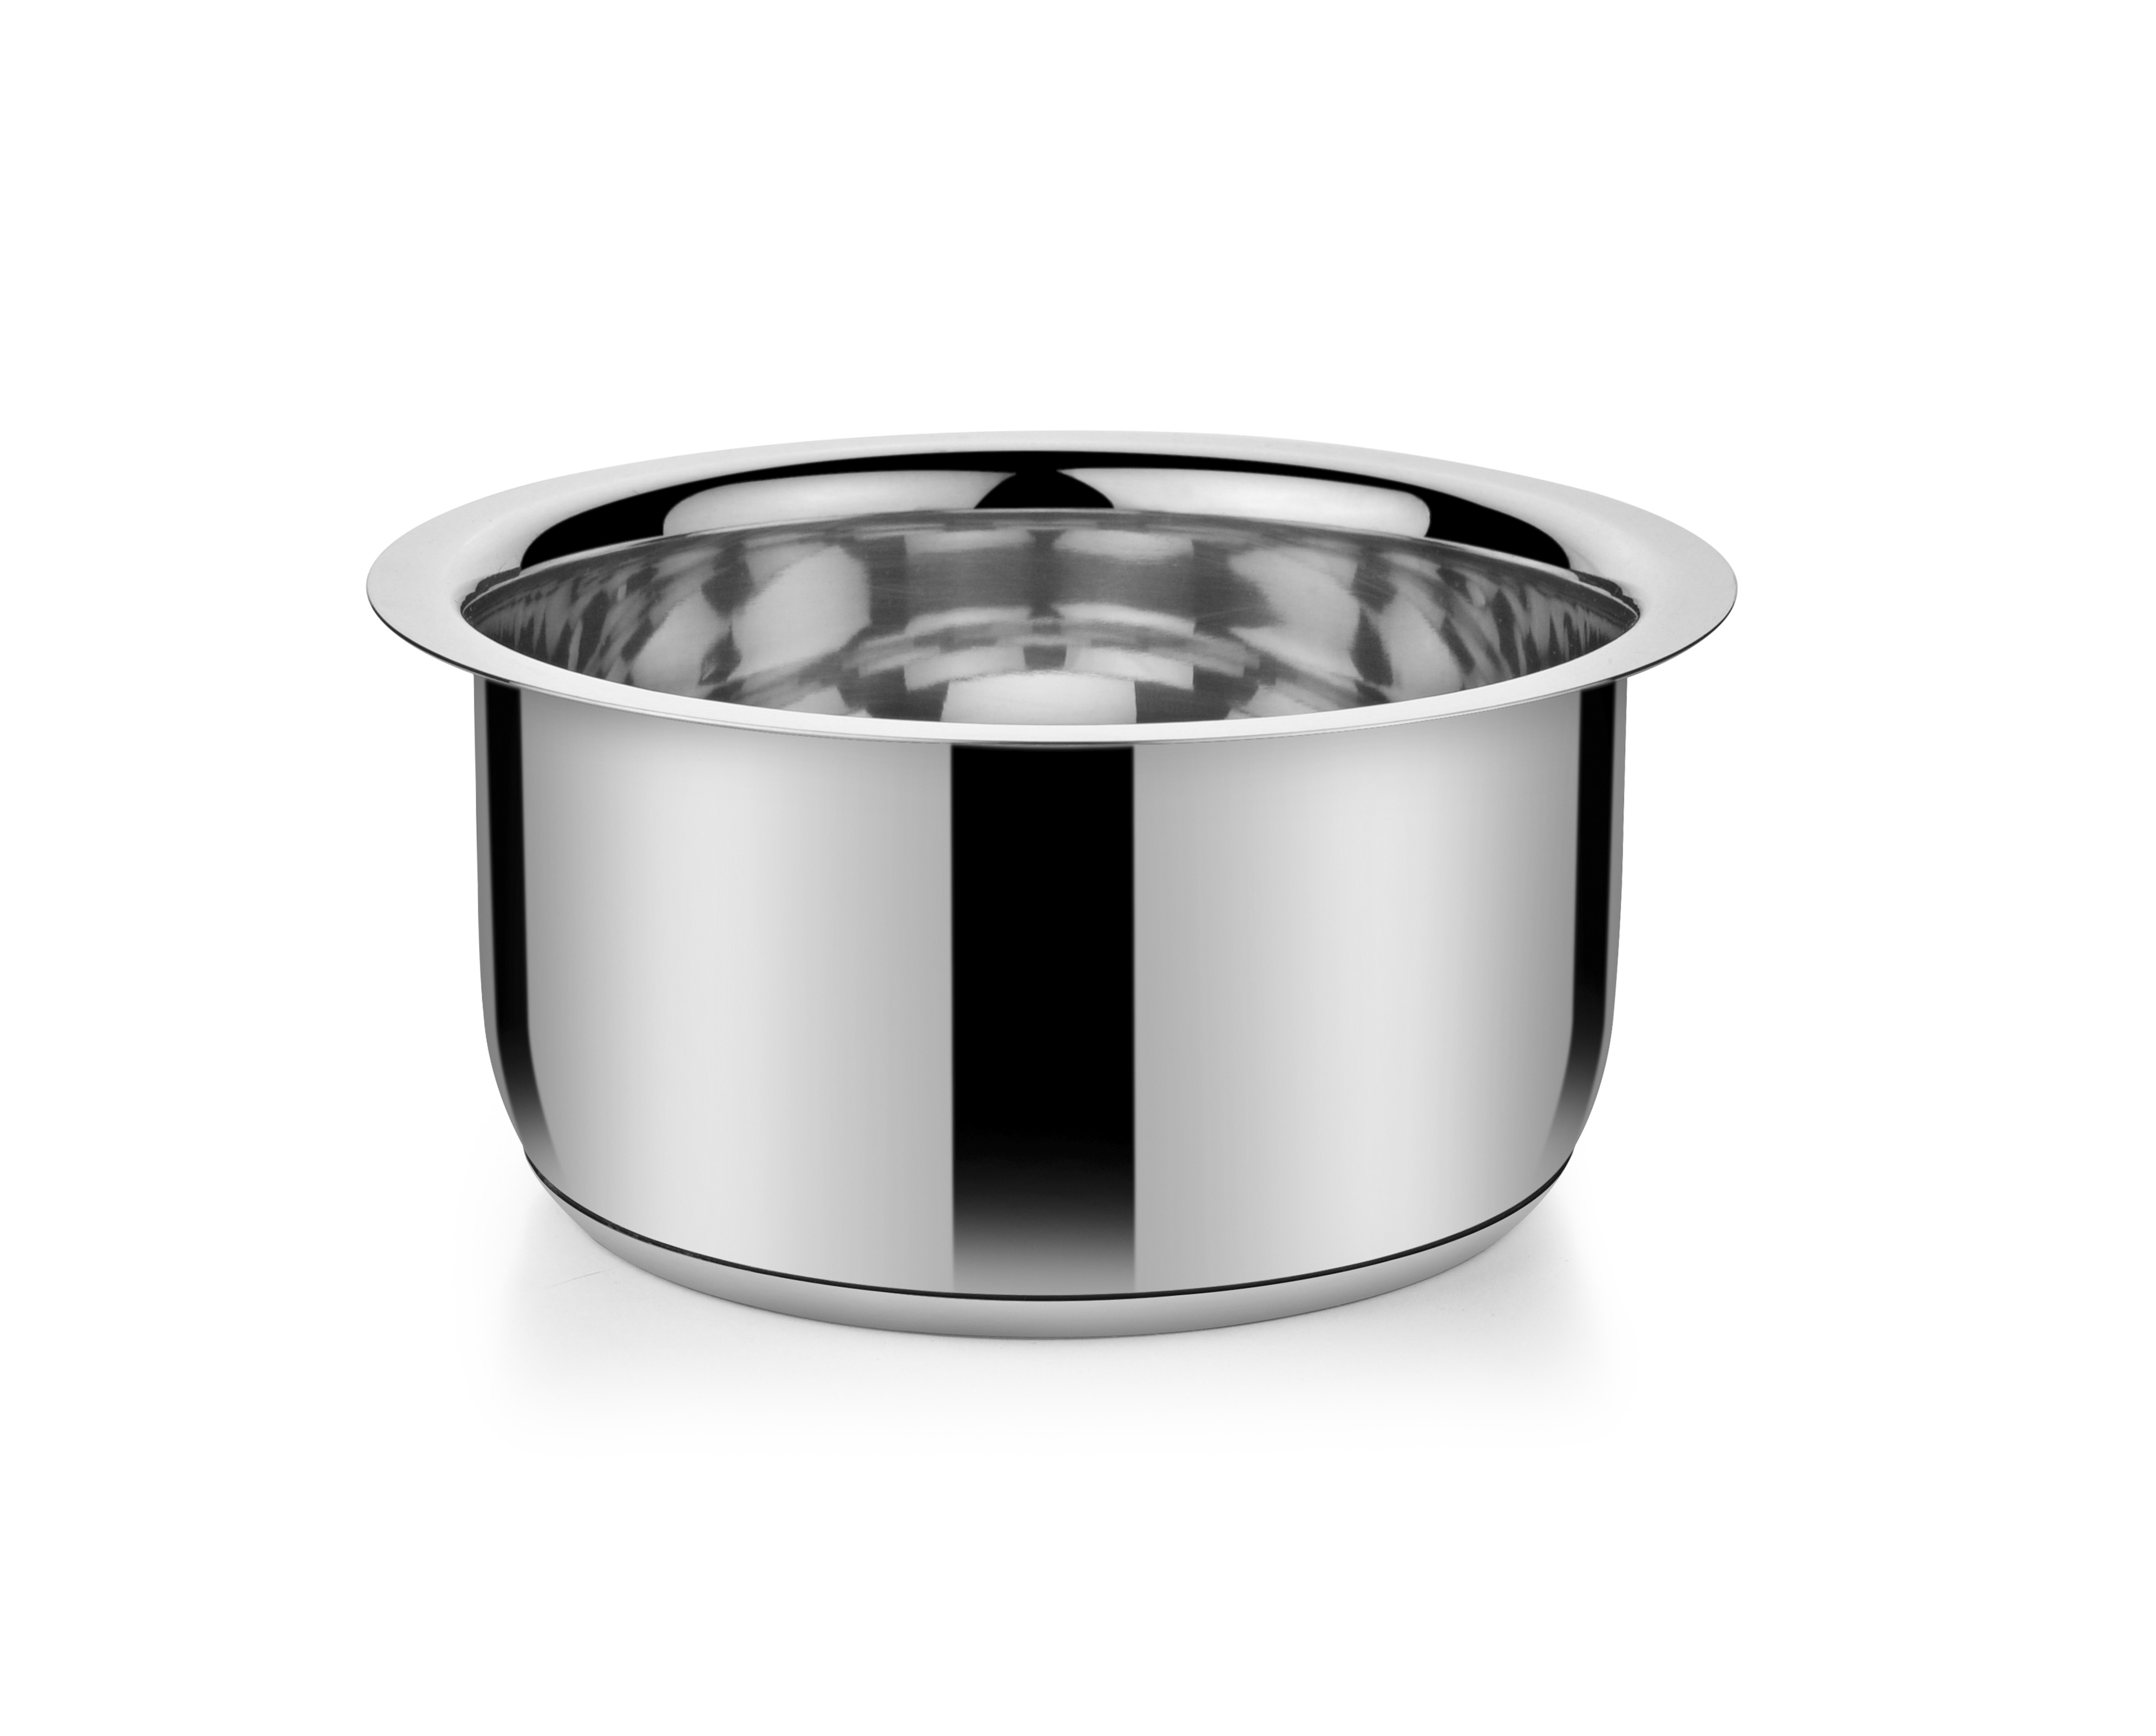 SS Milk Pan Encap btm 3300 ml 24 cm Stainless steel Sauce Pans in Stainless Steel Colour by Bonita